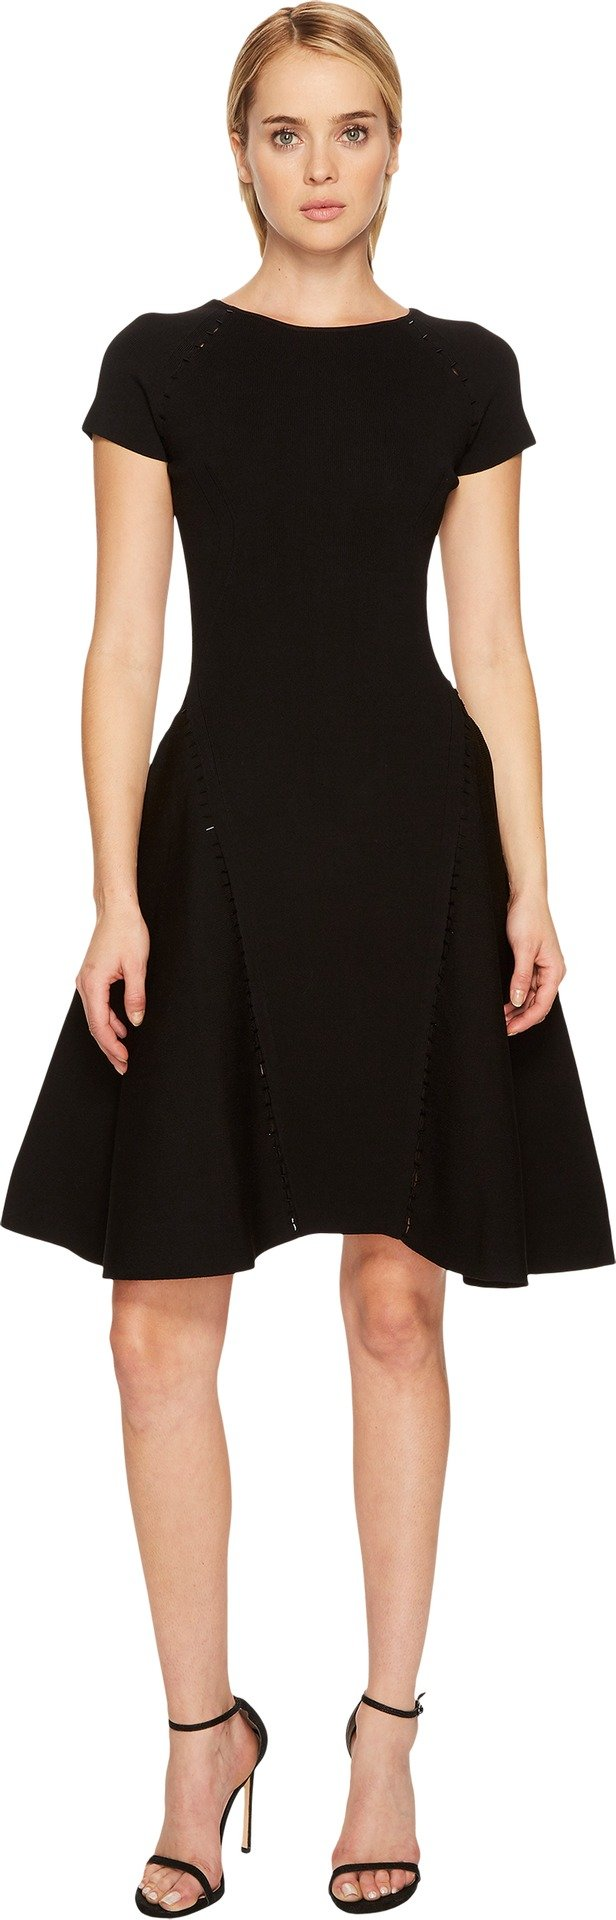 Zac Posen Women's Fine Rib Knit Cap Sleeve Fit and Flare Dress Black Medium